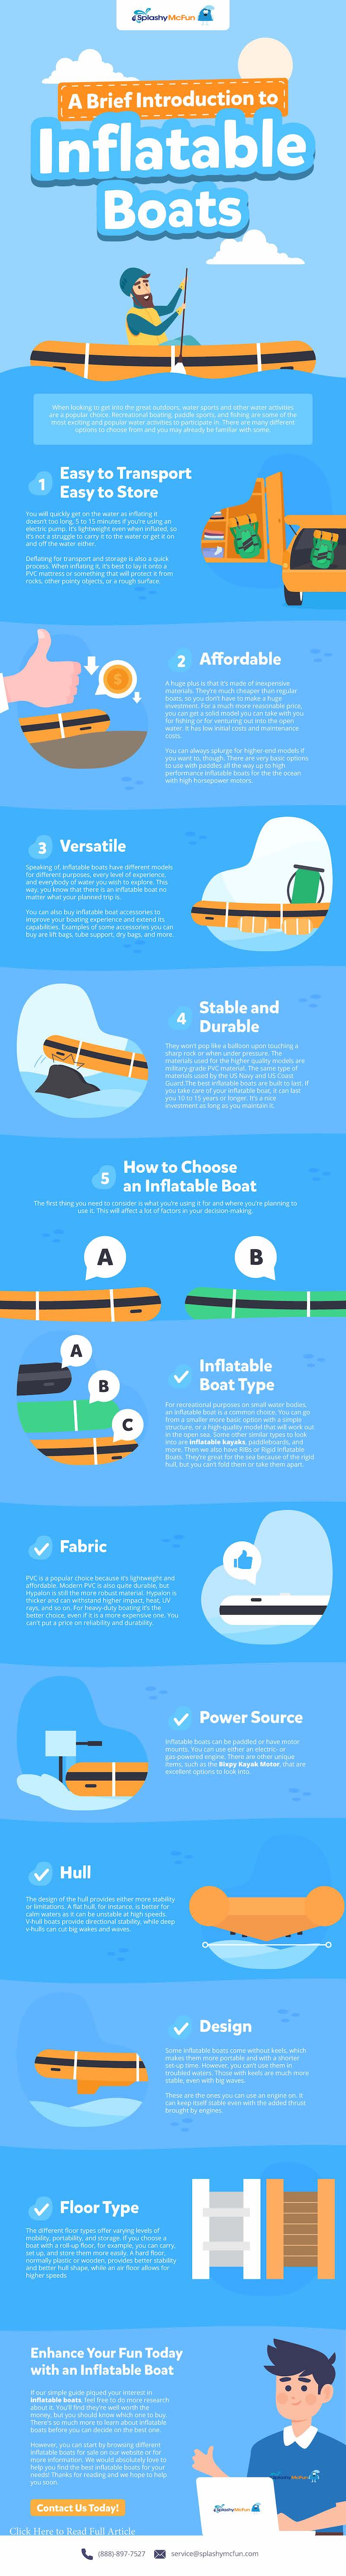 A Brief Intro to Inflatable Boats